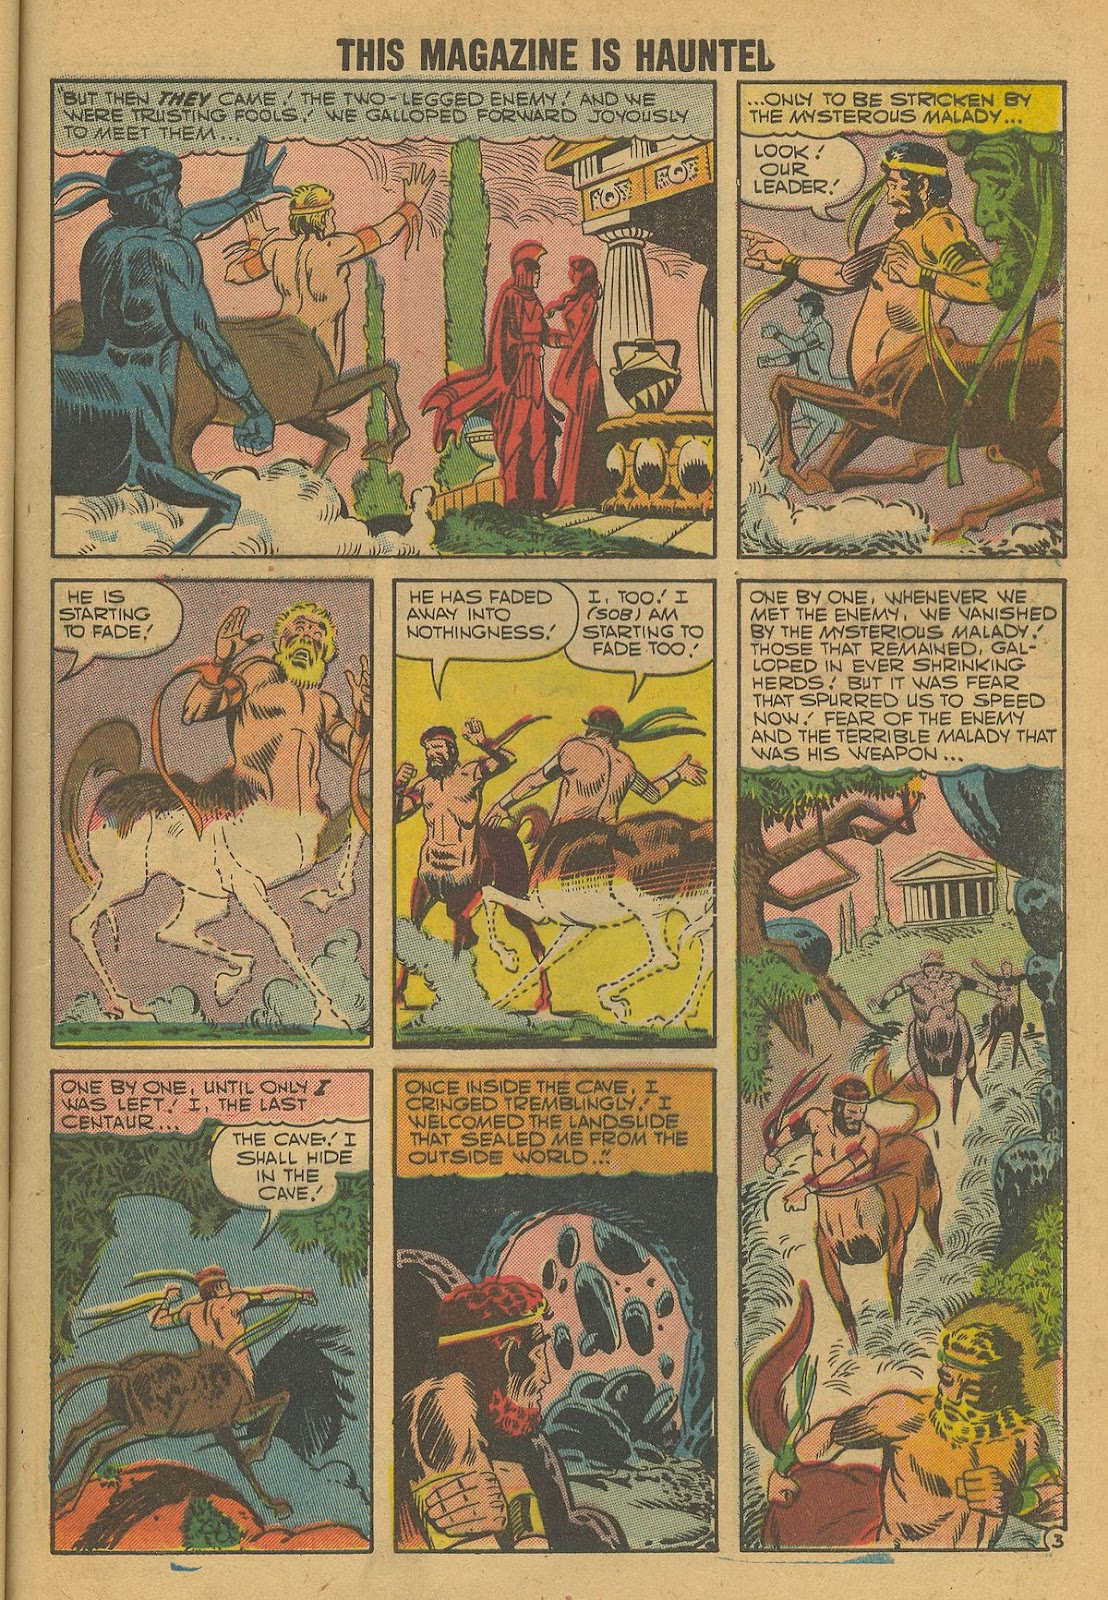 Read online This Magazine Is Haunted comic -  Issue #12 - 29